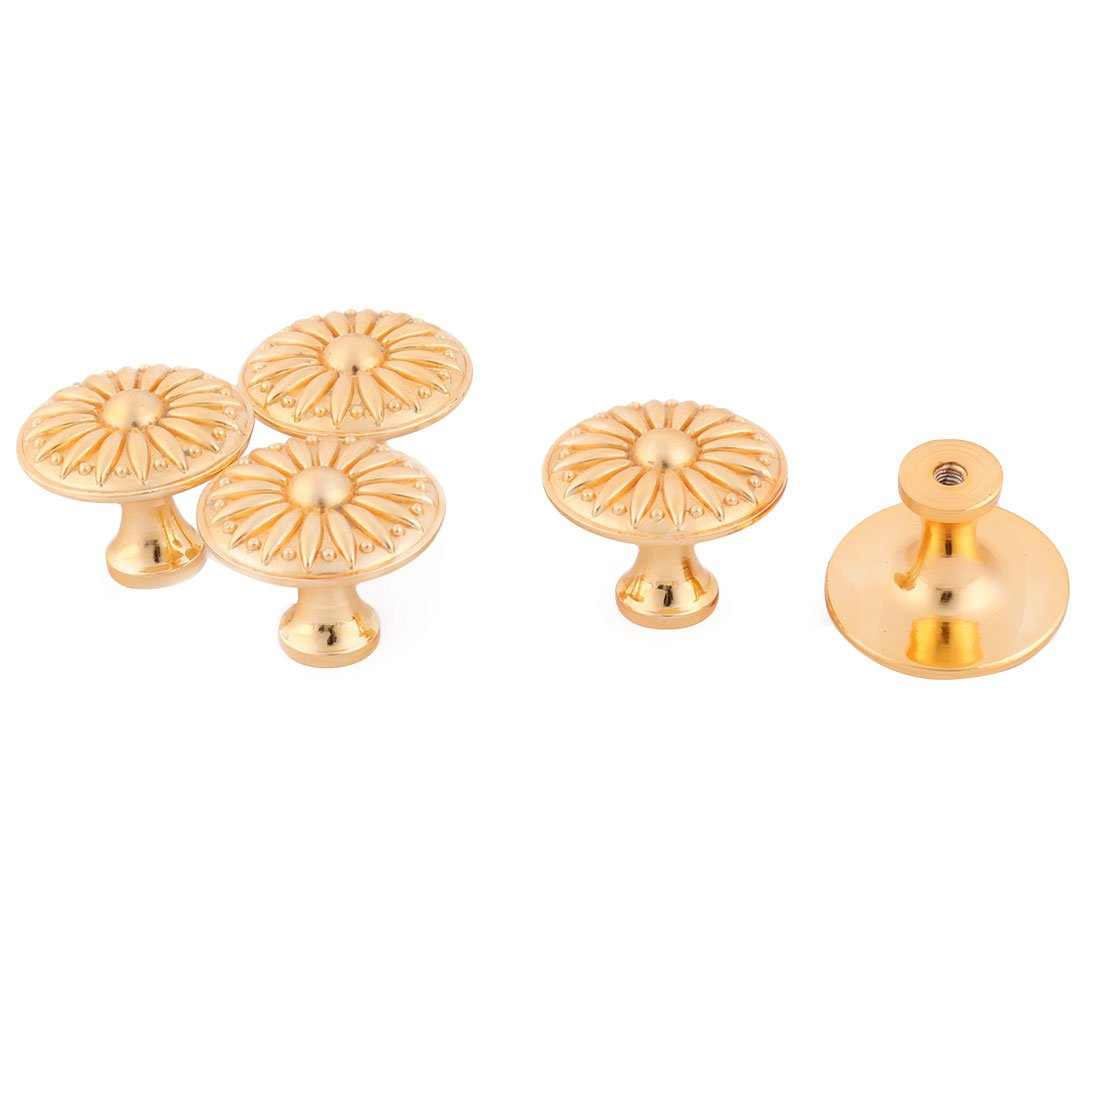 uxcell Family Vintage Style Door Window Cabinet Cupboard Pull Grip Knob 5pcs Gold Tone